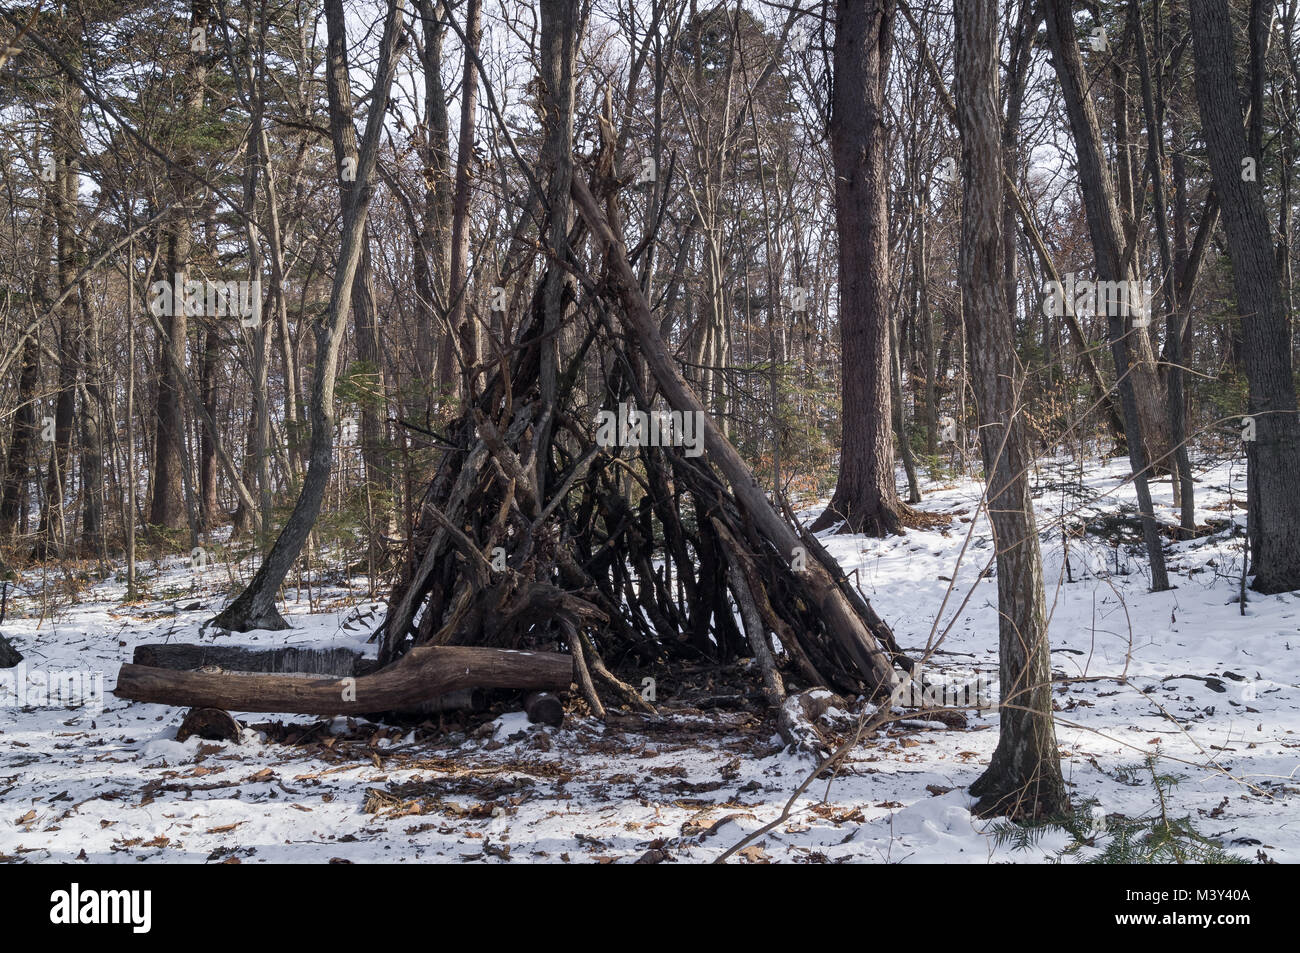 A hut or hut in the forest is like preparing for a signal or pioneer boyscout campfire - Stock Image